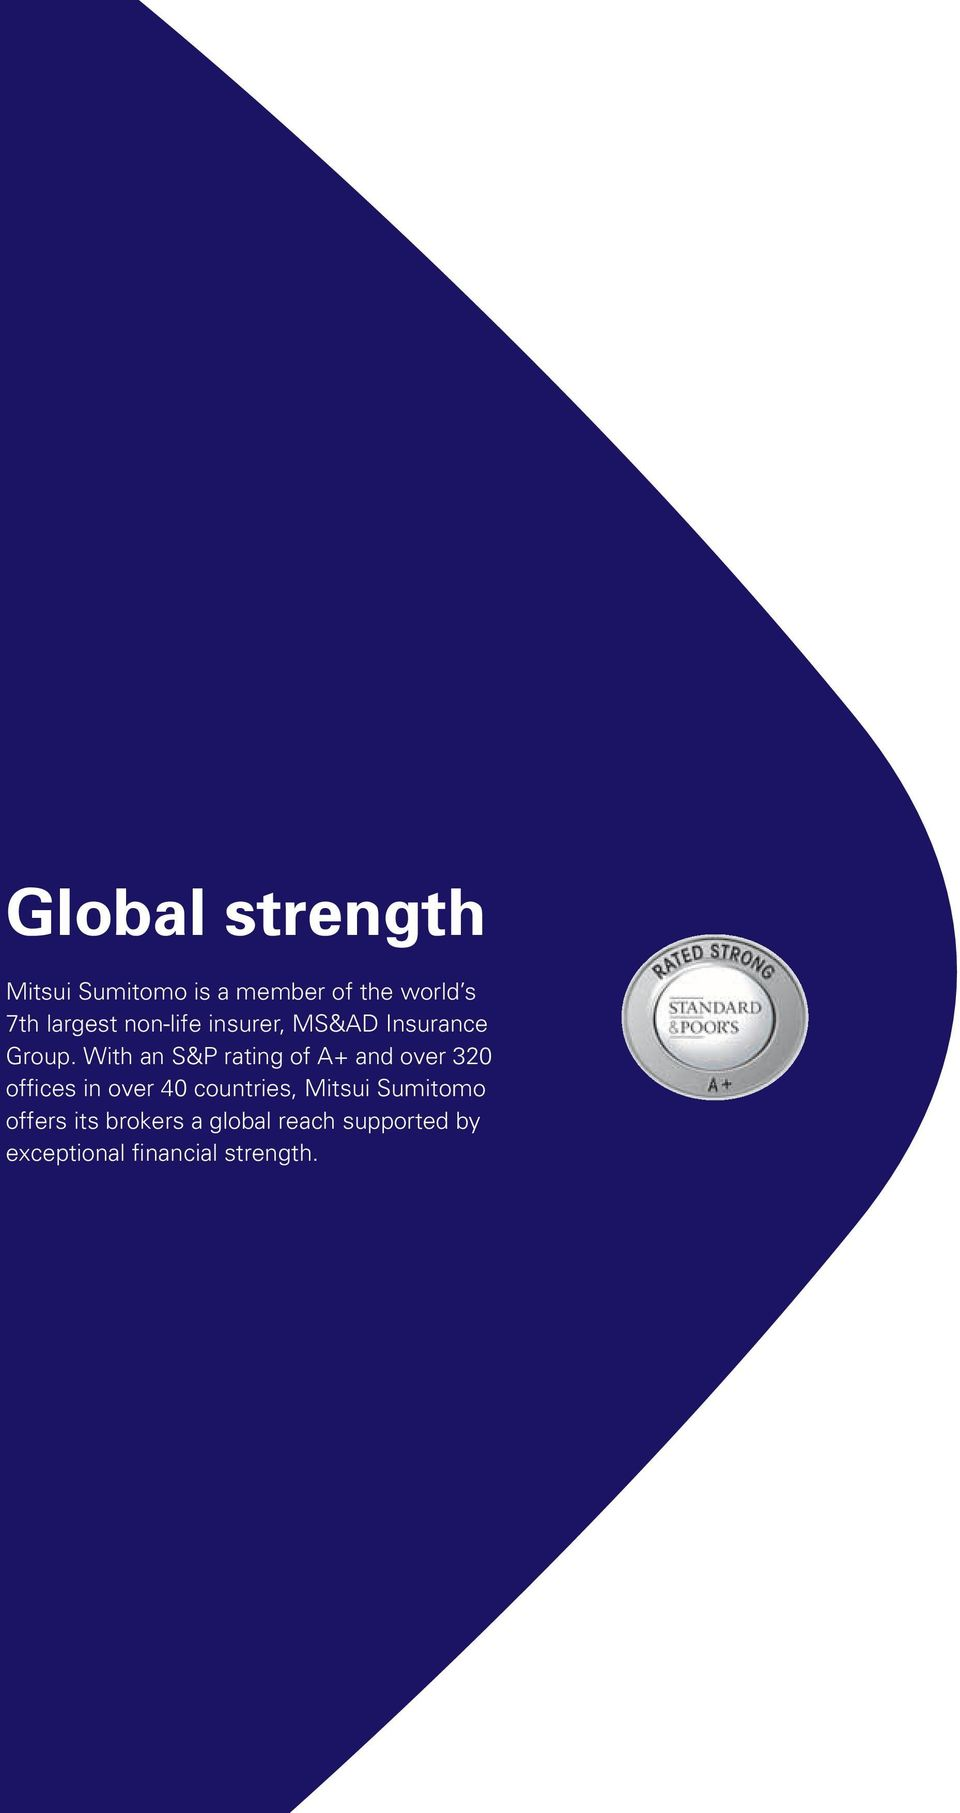 With an S&P rating of A+ and over 320 offices in over 40 countries,